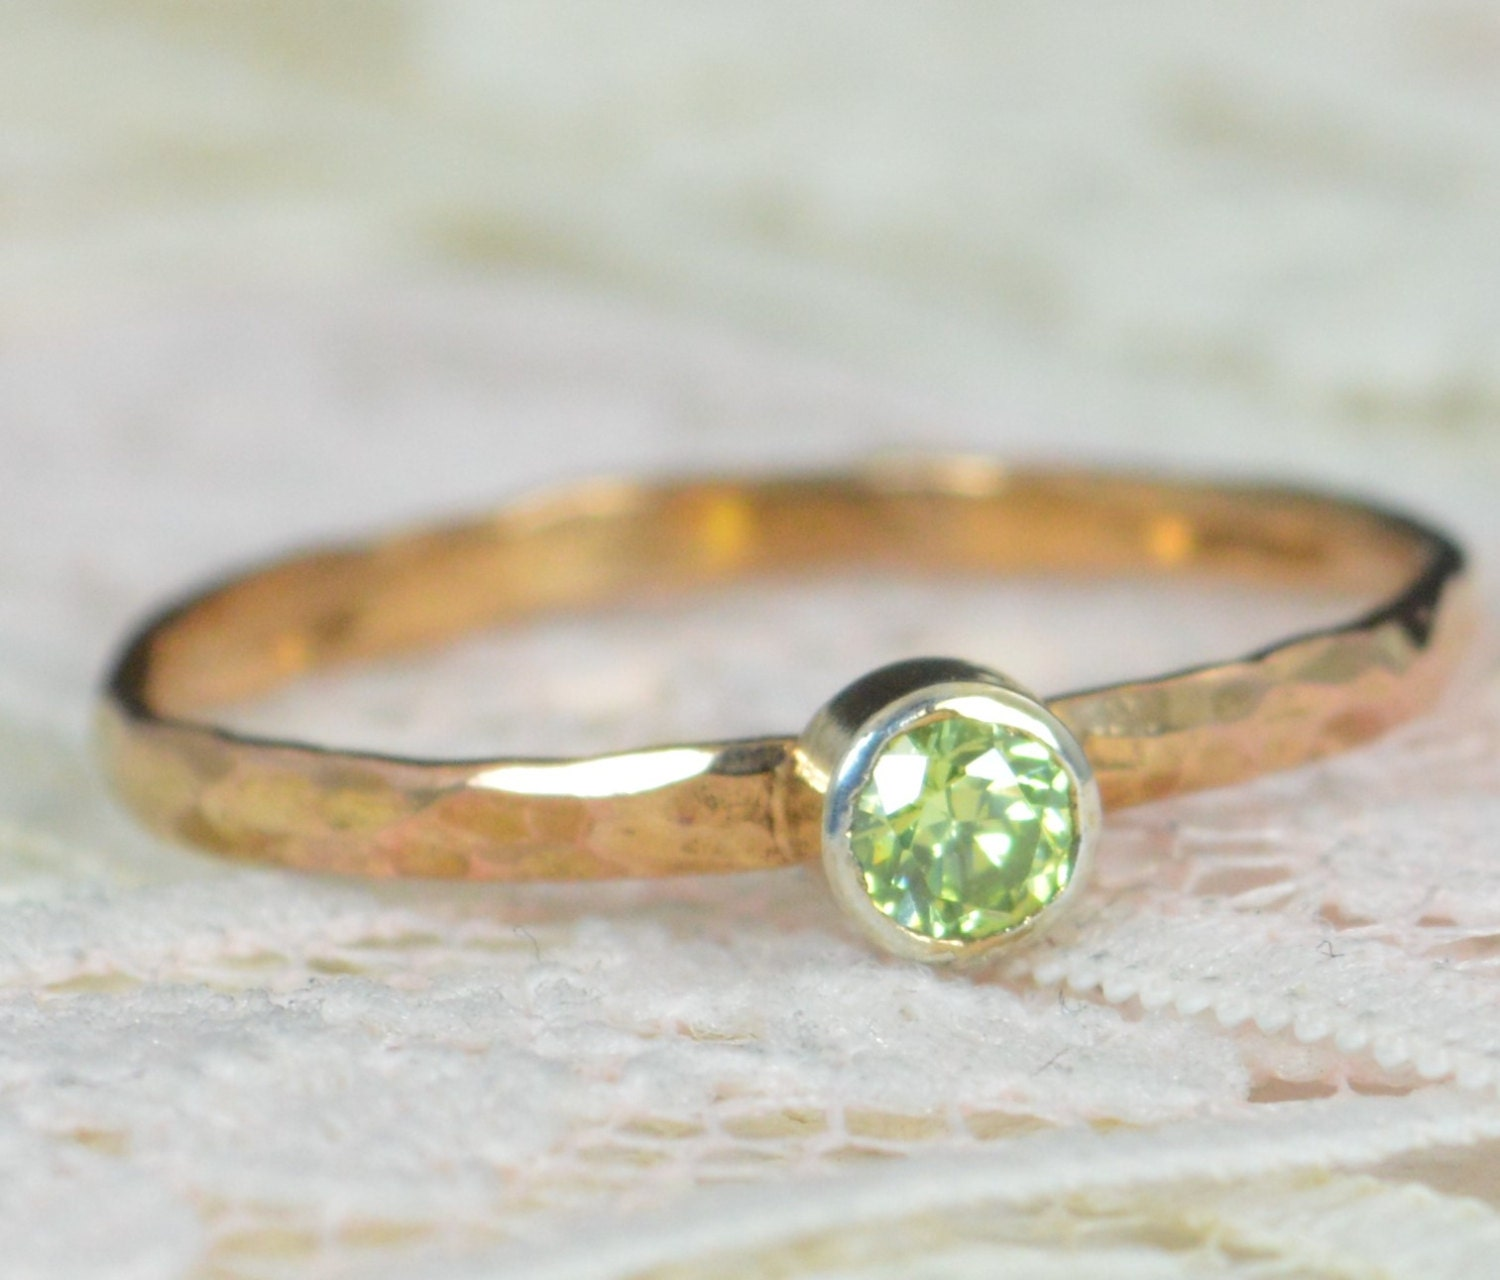 pave gemstone bands matching green for diamond band thin peridot white gold cut ring wedding round set engagement rings diamonds